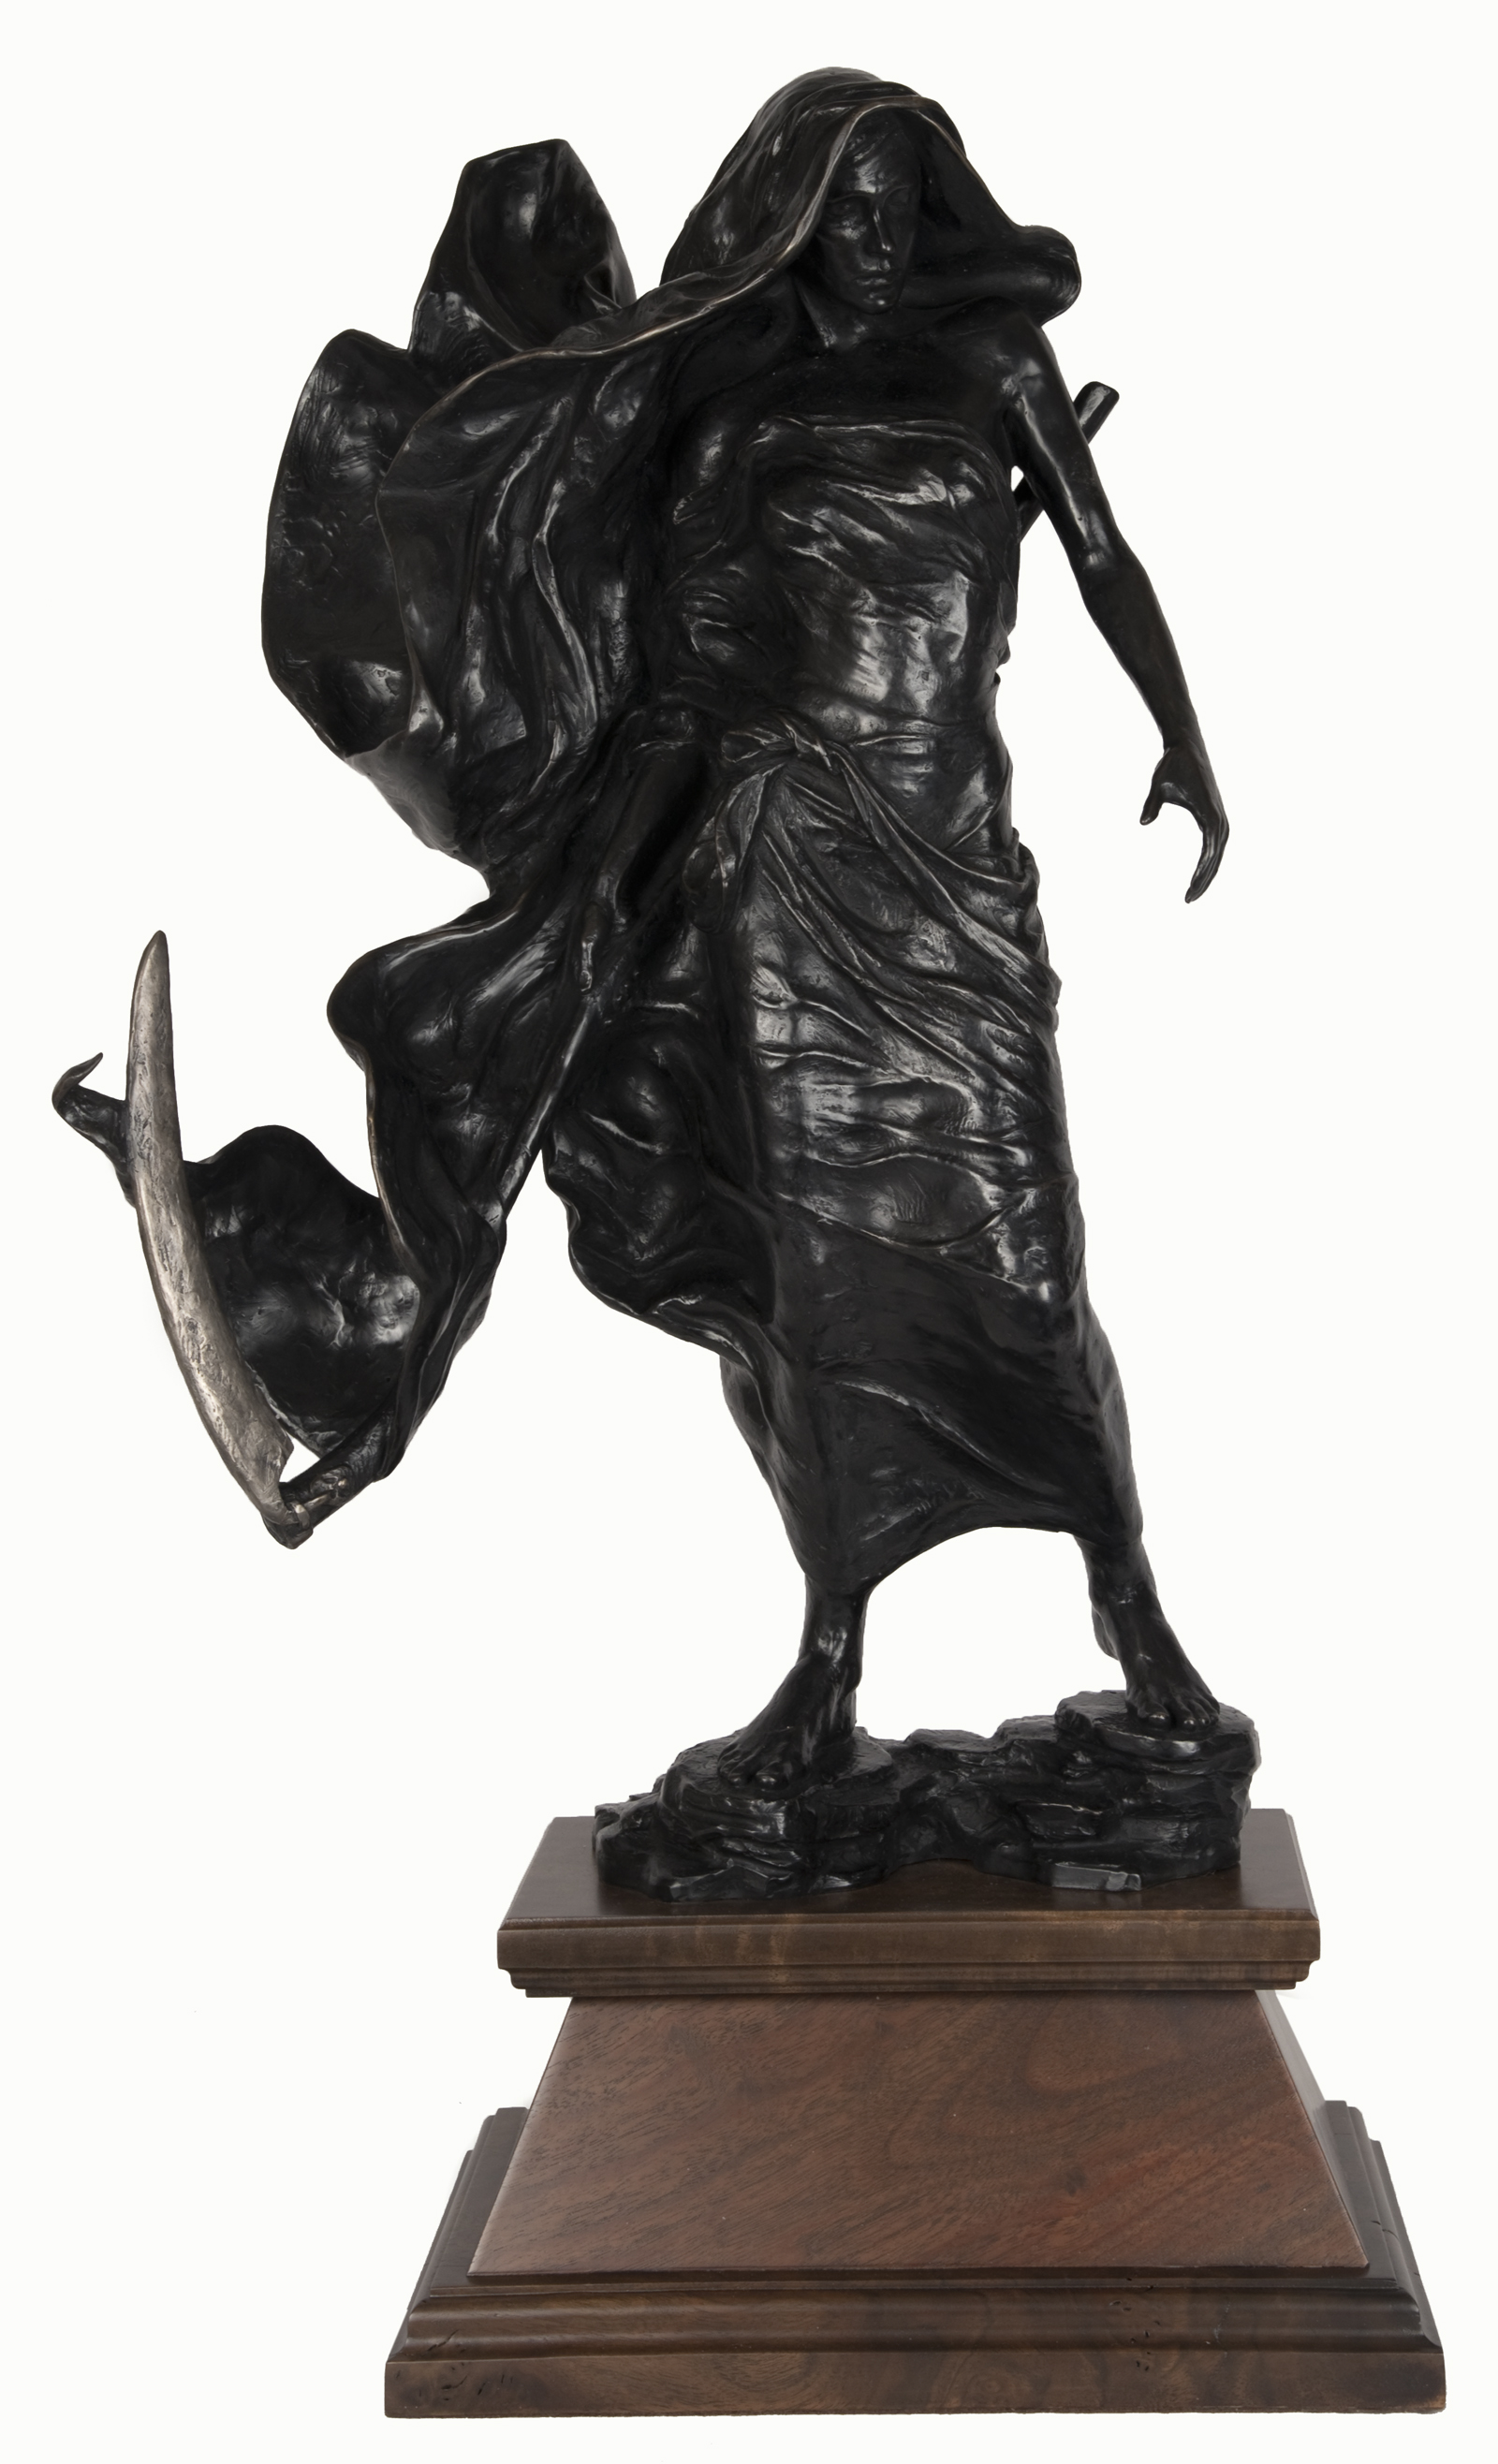 The Reaper by Tyson Snow   /   bronze   /   28 1/2 × 15 × 12 (in)    /   Date of Creation: 2014. The Reaper won first place in the 2015 International ARC Salon competition at the European Museum of Modern Art in Barcelona, Spain.